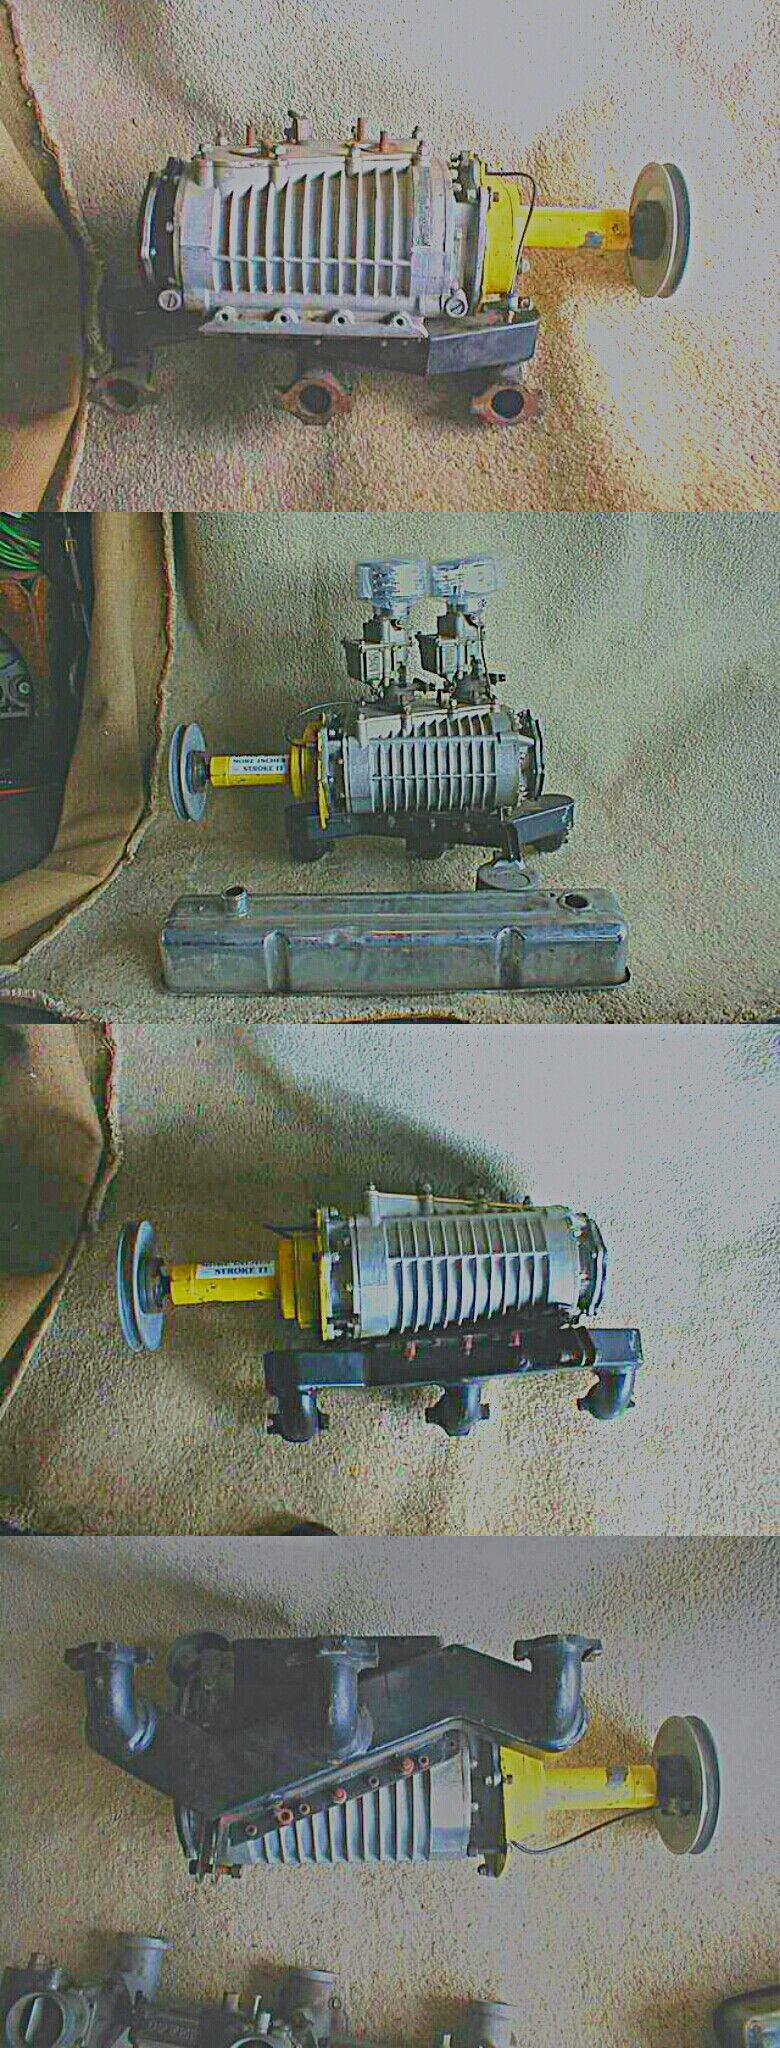 hight resolution of supercharger for a inline 6 cylinder chevrolet